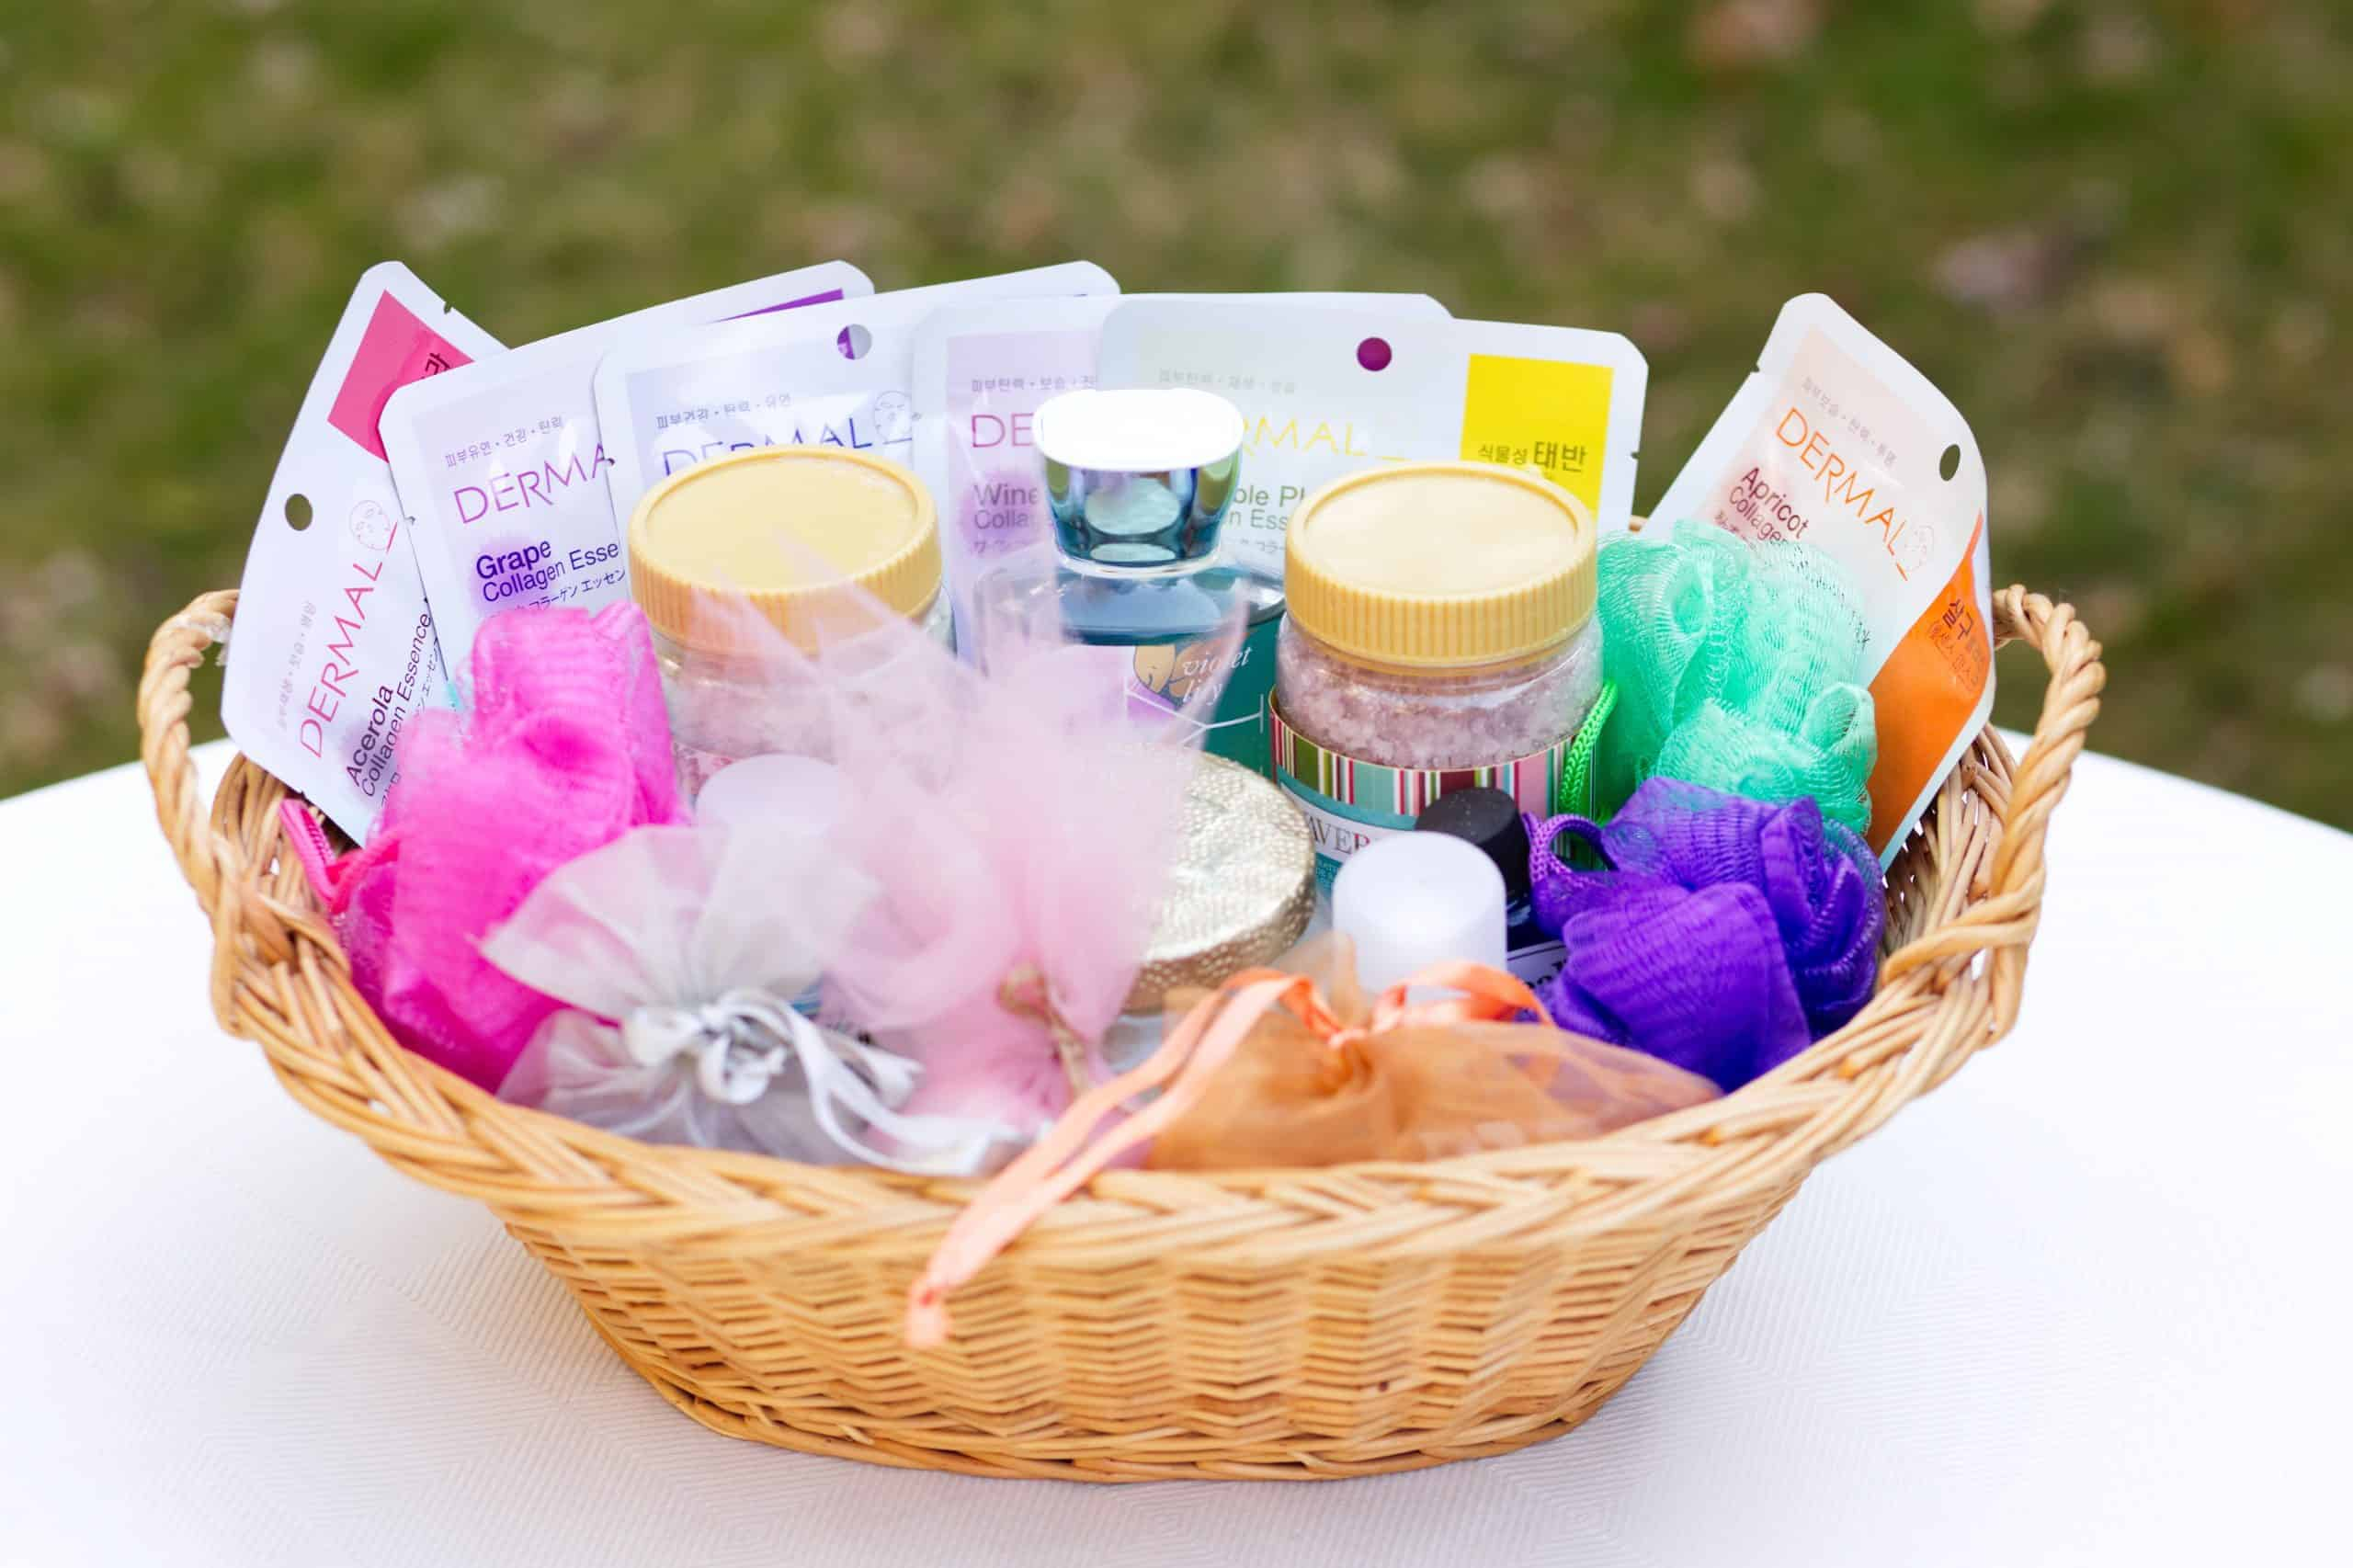 Spa day gift basket - Basket filled with bath and beauty products